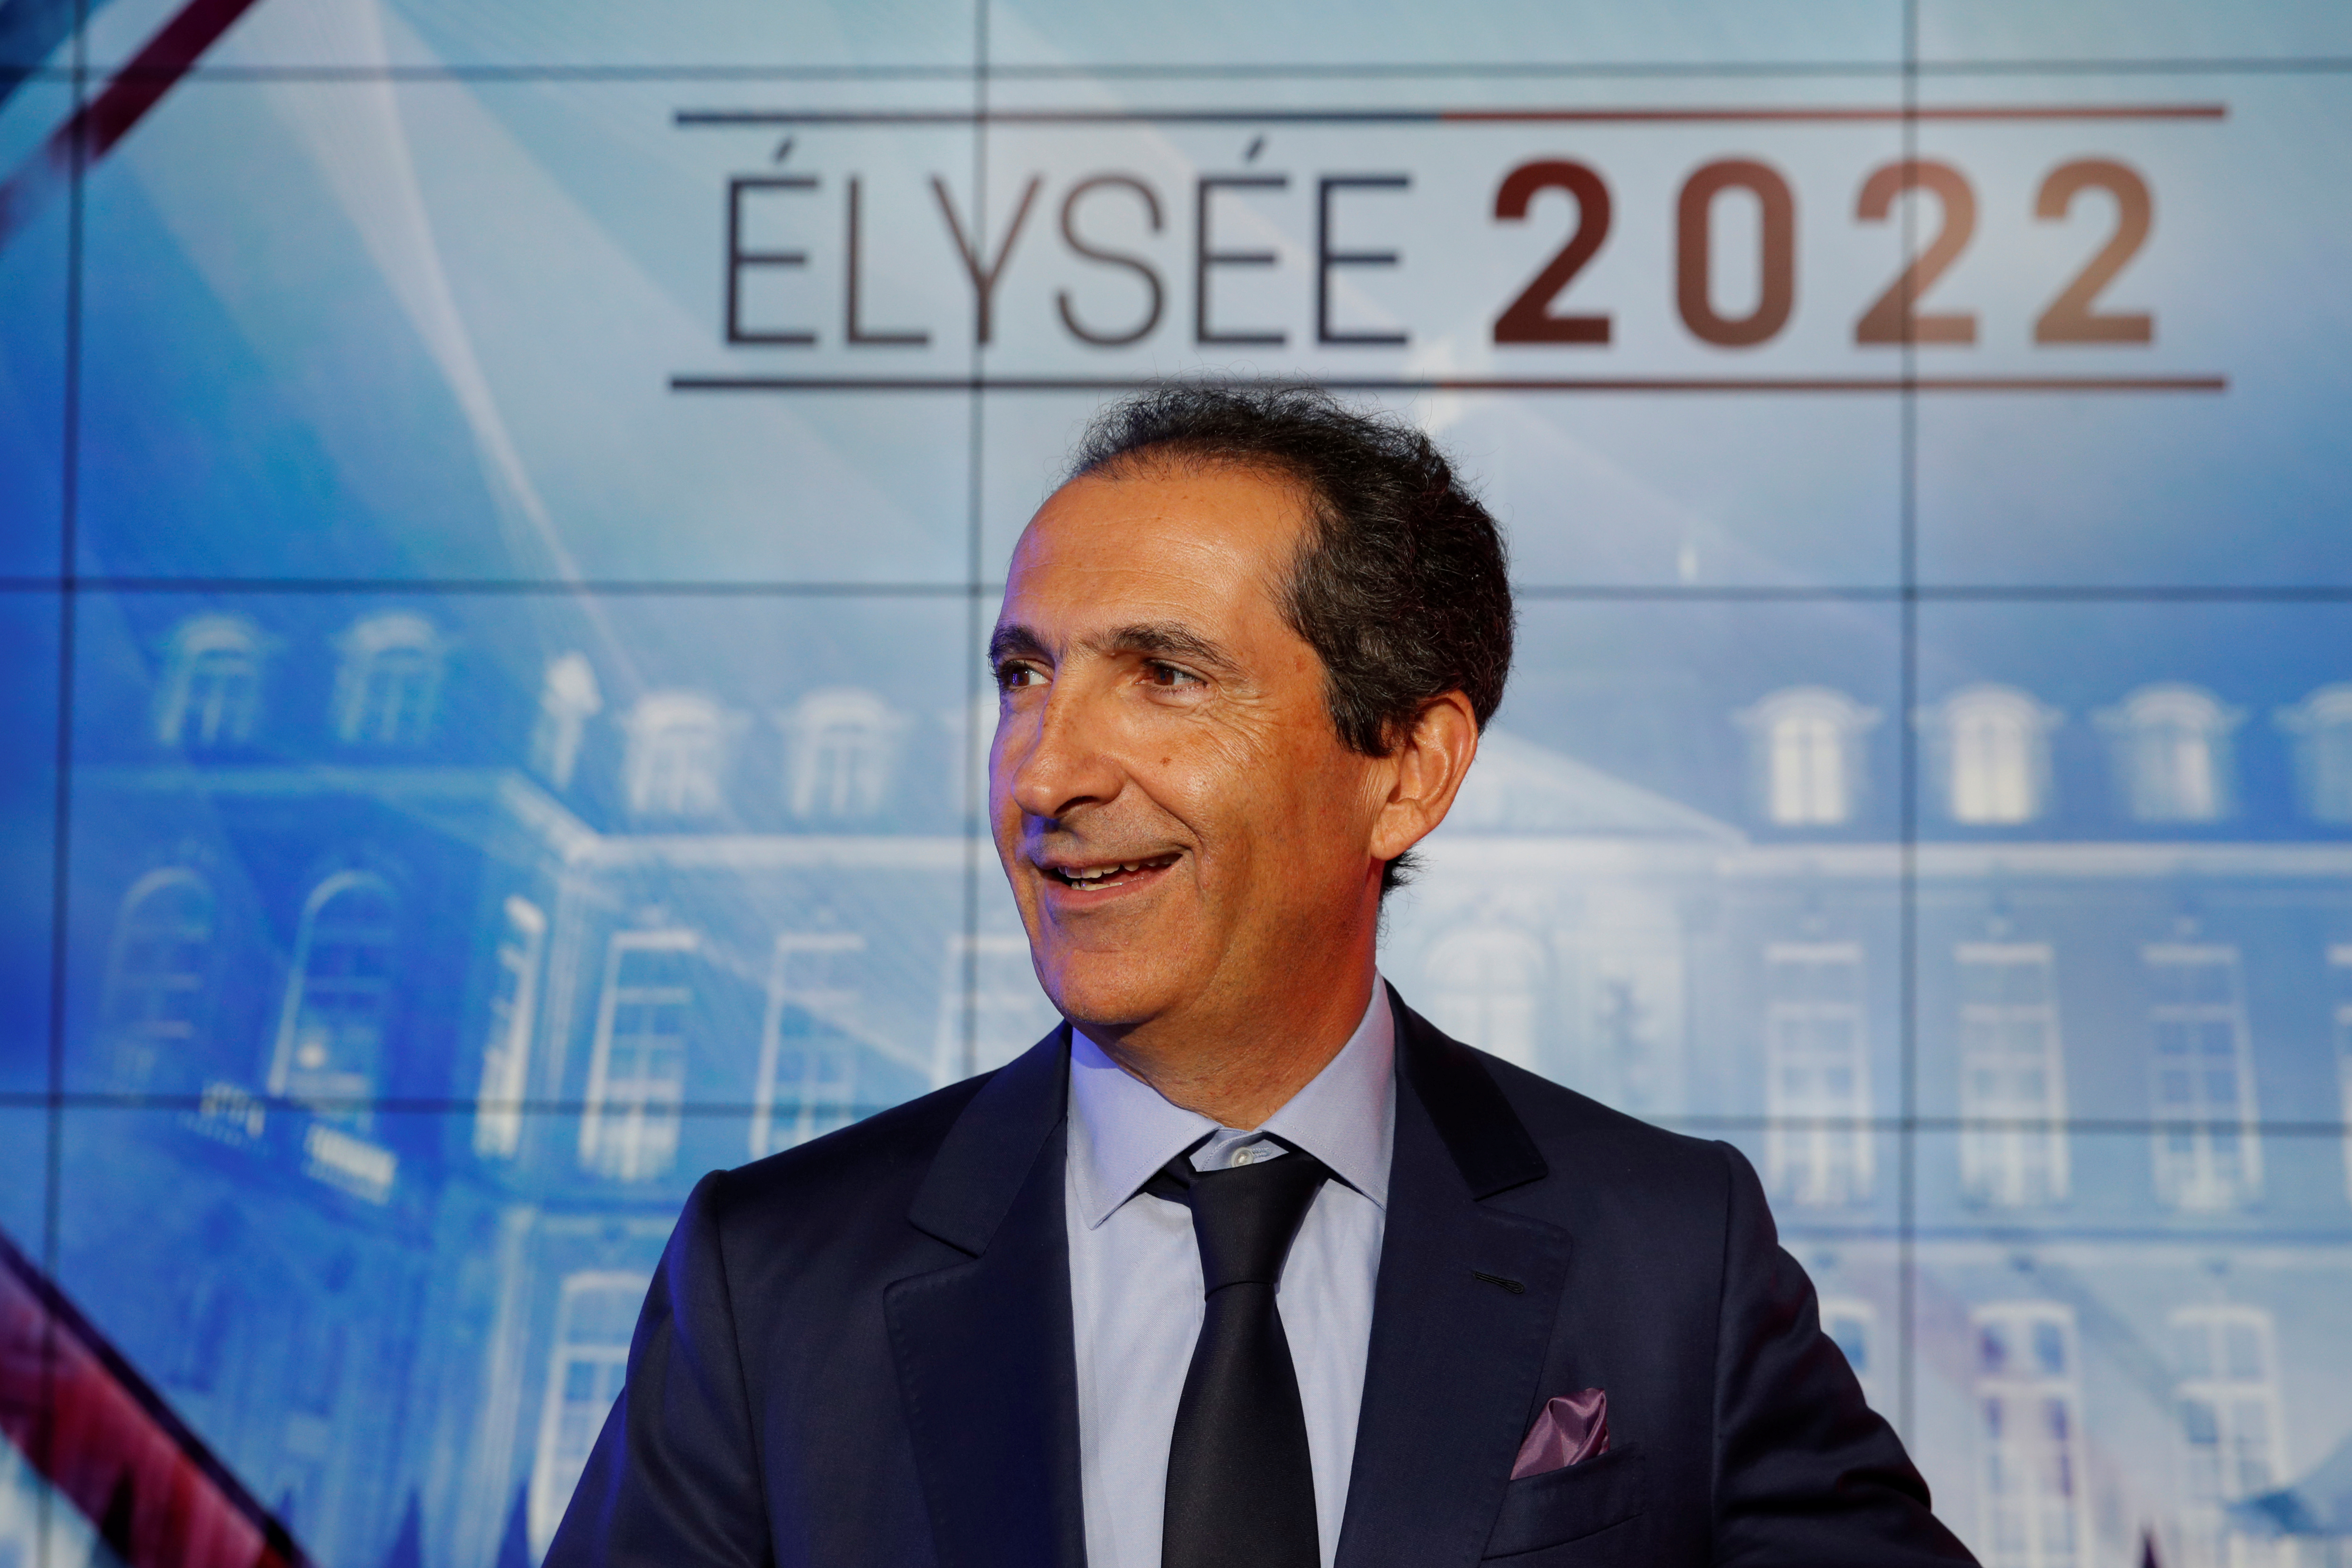 Patrick Drahi, Franco-Israeli businessman and founder of cable and mobile telecoms company Altice Group attends the inauguration of the Altice Campus in Paris, France, October 9, 2018.